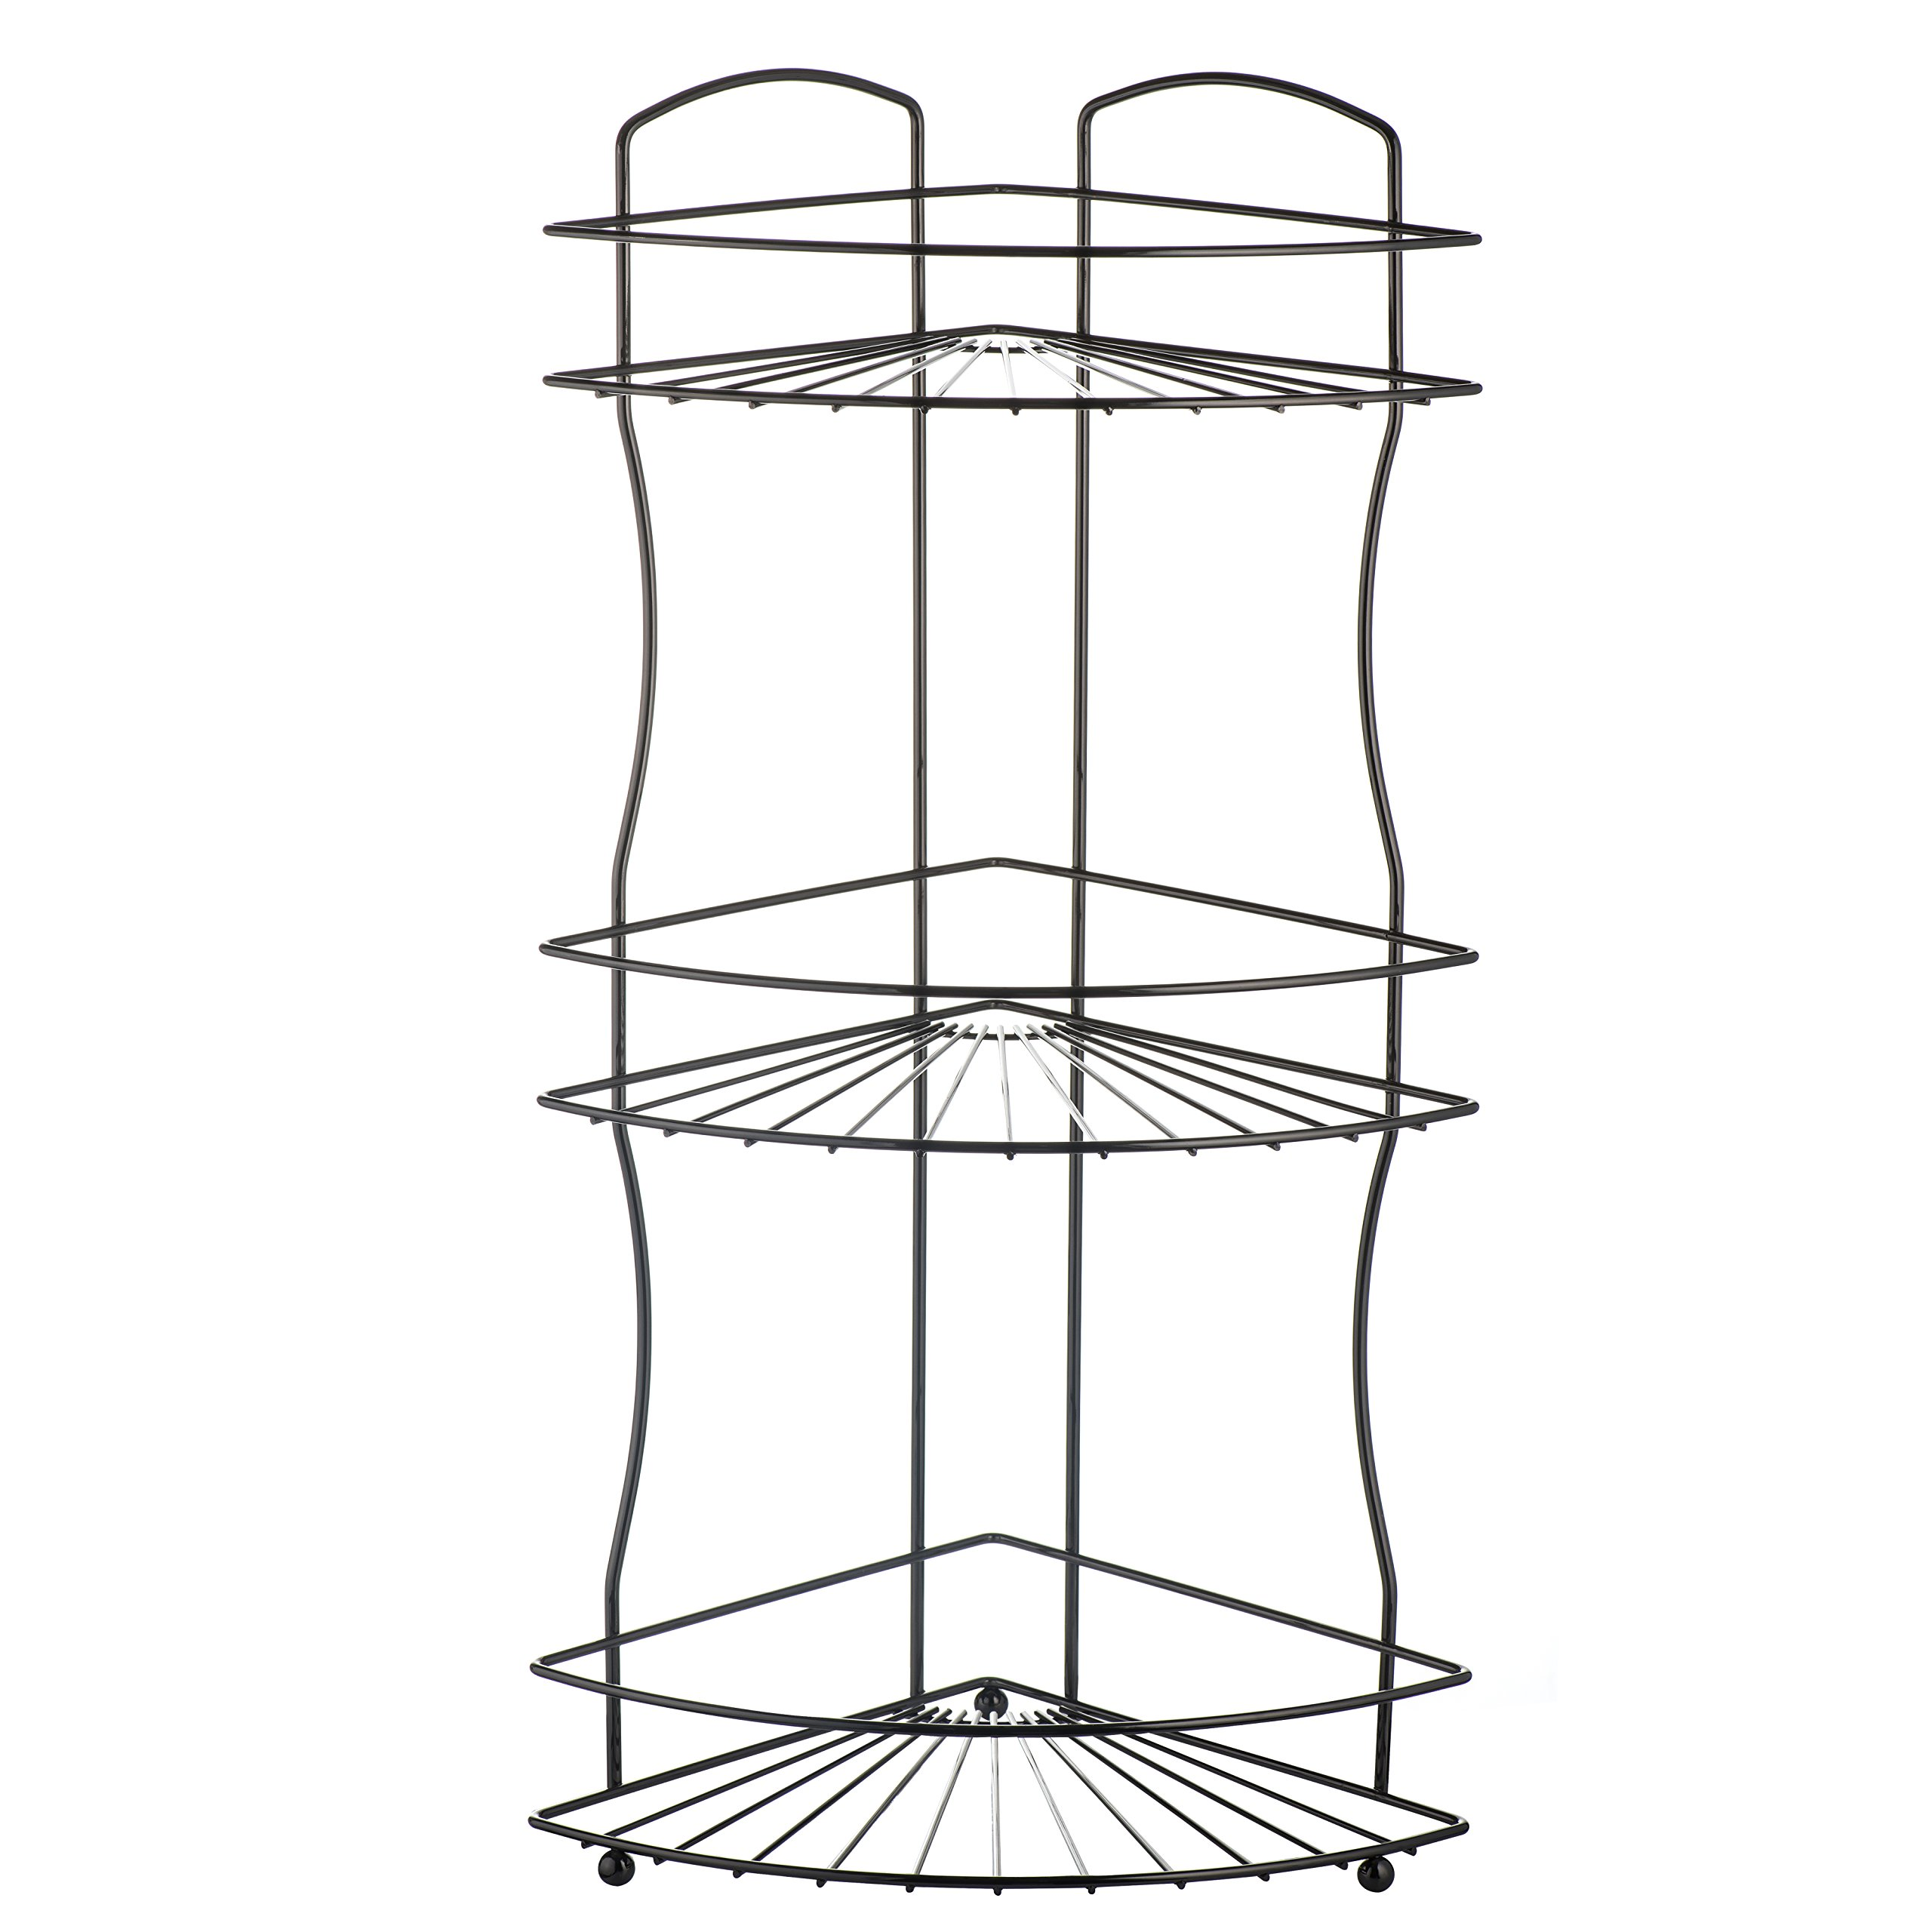 AMG and Enchante Accessories Free Standing Bathroom Spa Tower Floor Caddy, FC232-A BKN, Black Nickel by AMG (Image #7)